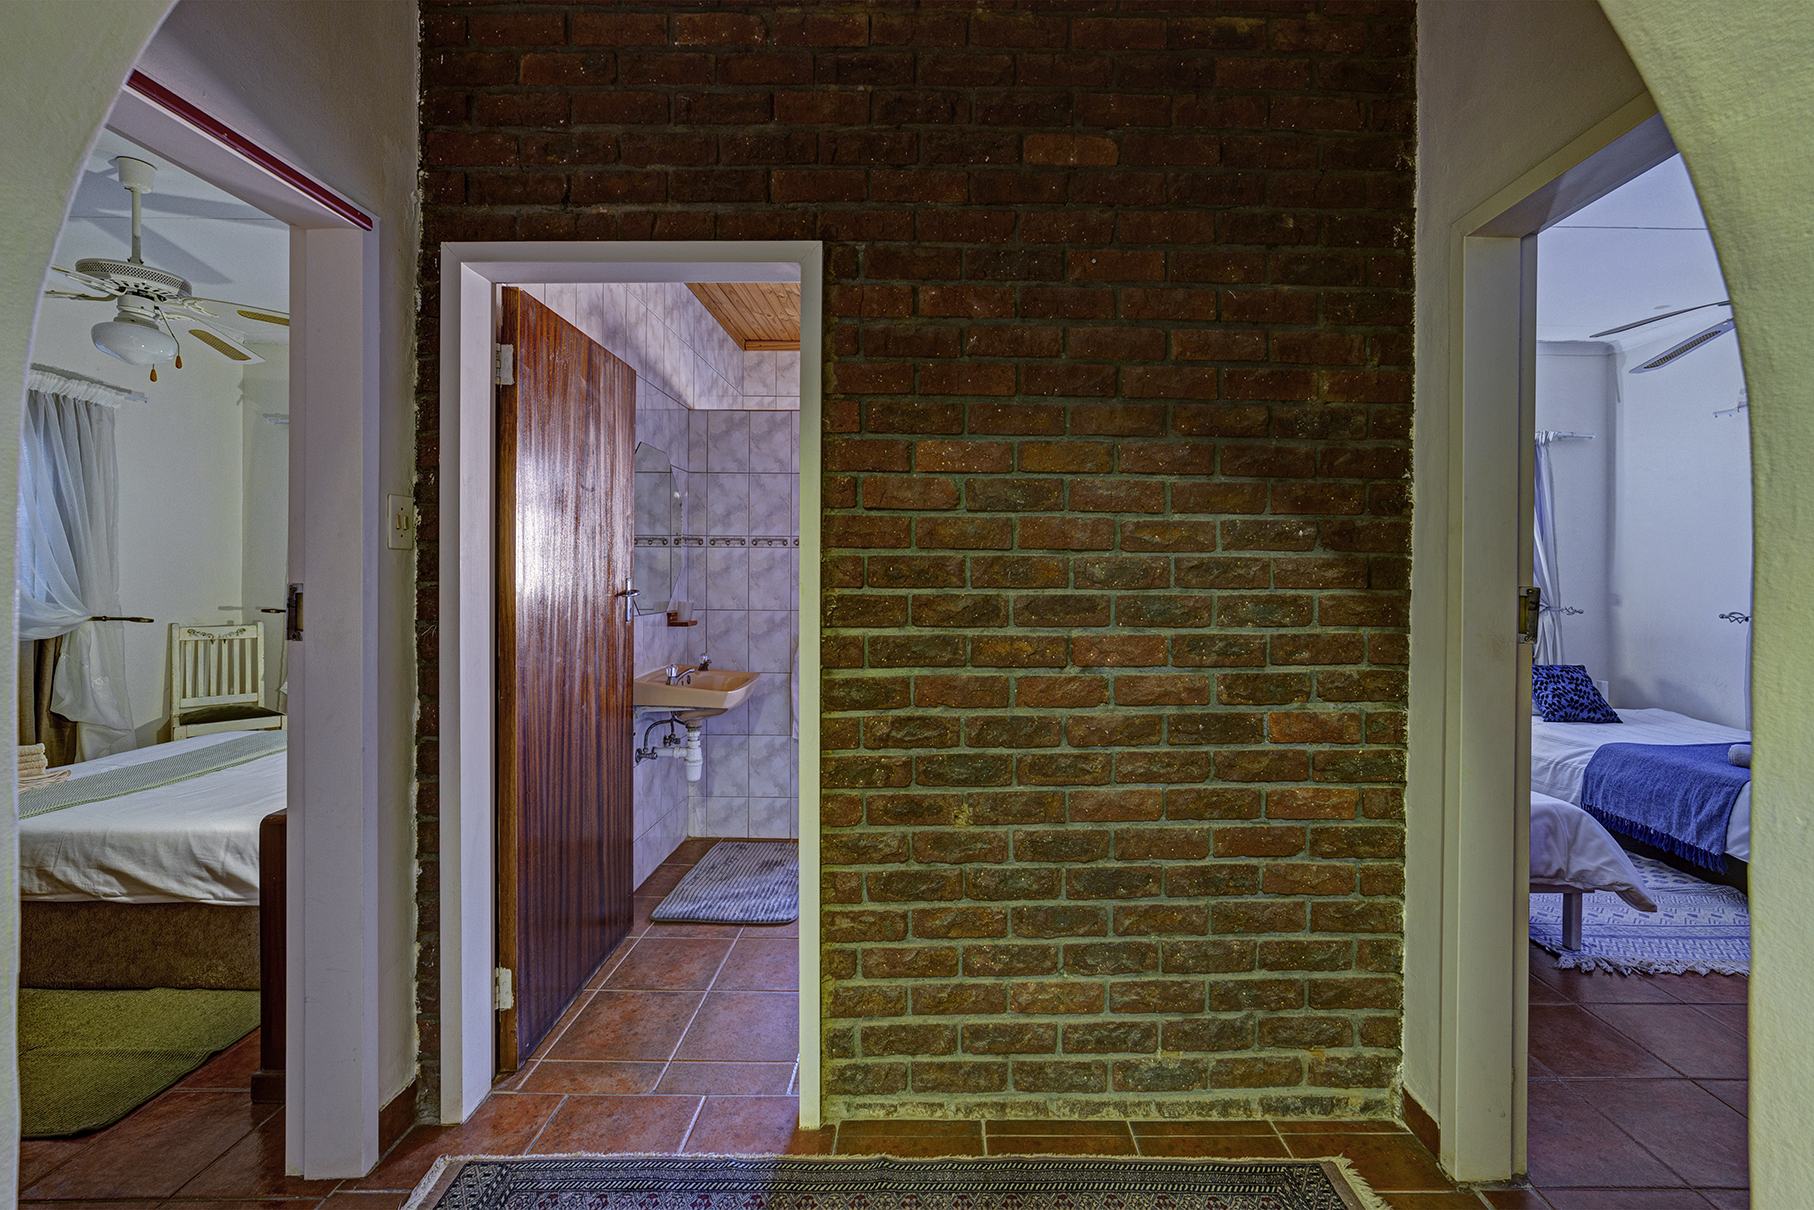 Two Family Rooms sharing a Bathroom- Self-Catering